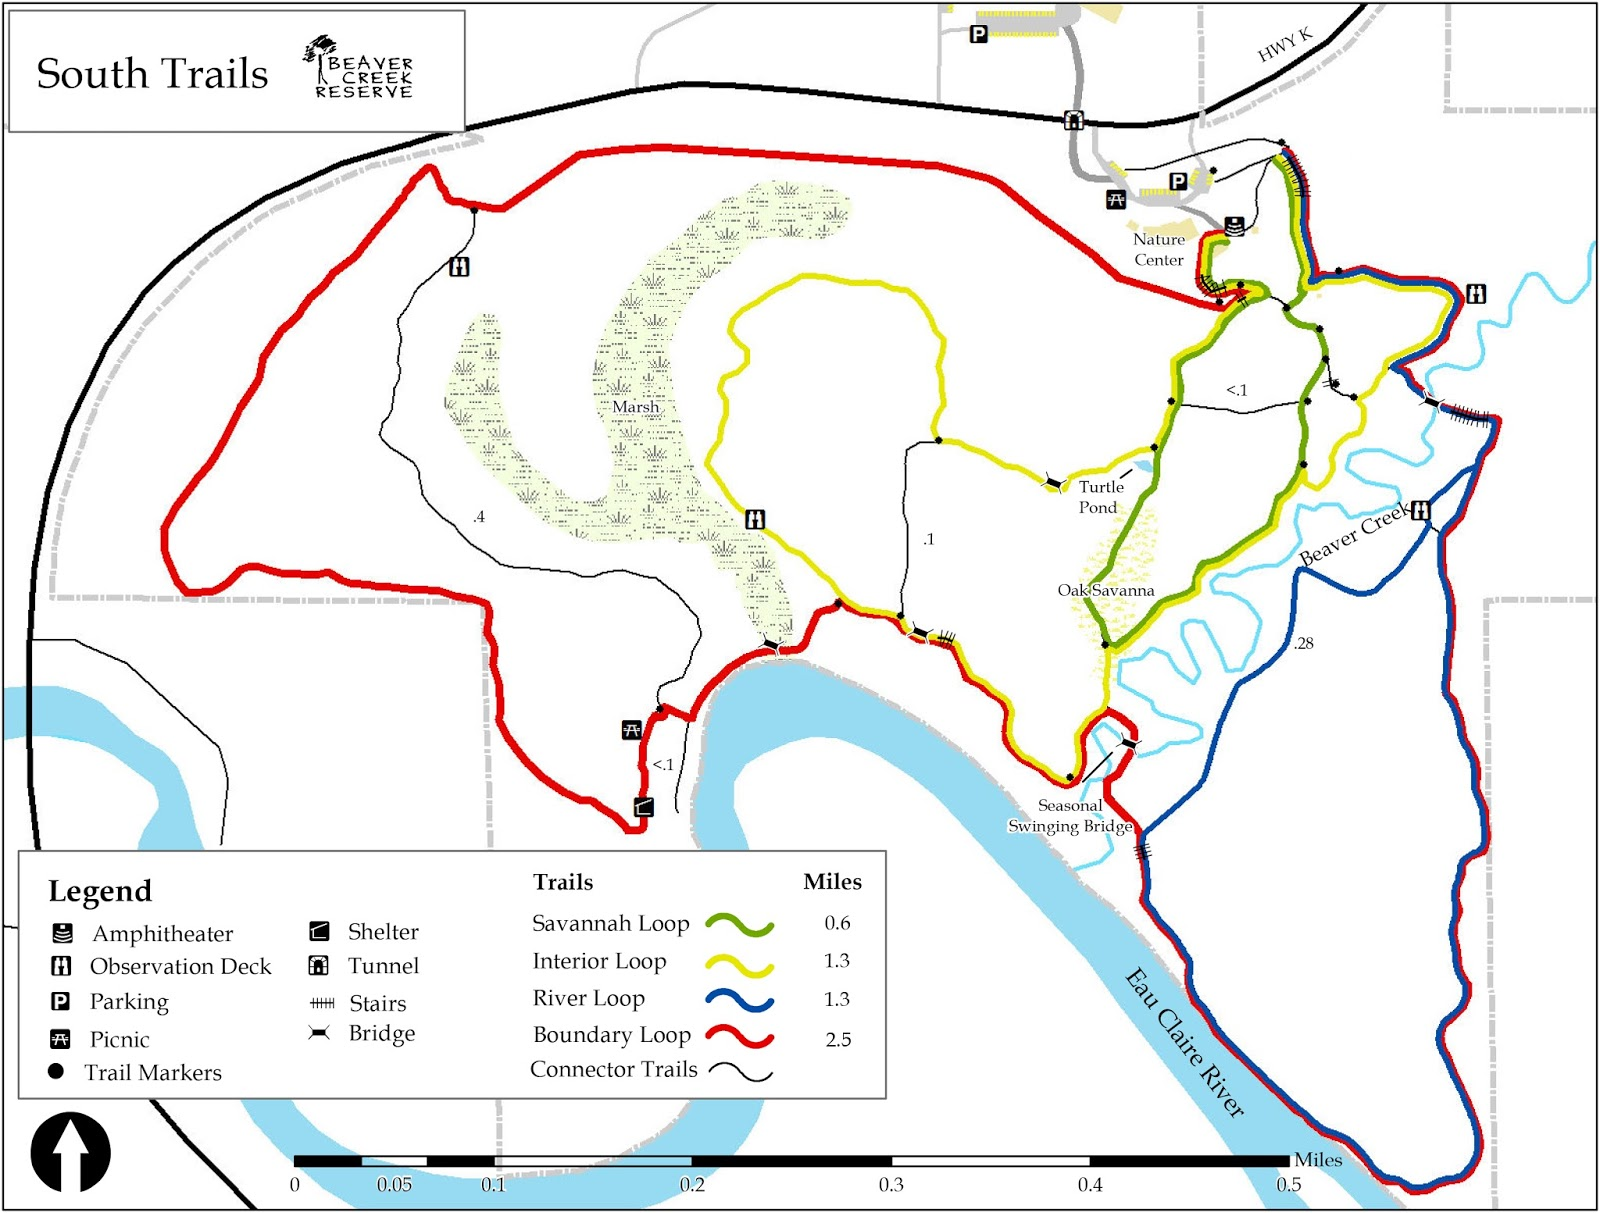 Day Hiking Trails Array Of Trails Await At Beaver Creek Reserve - Beavercreek trail map